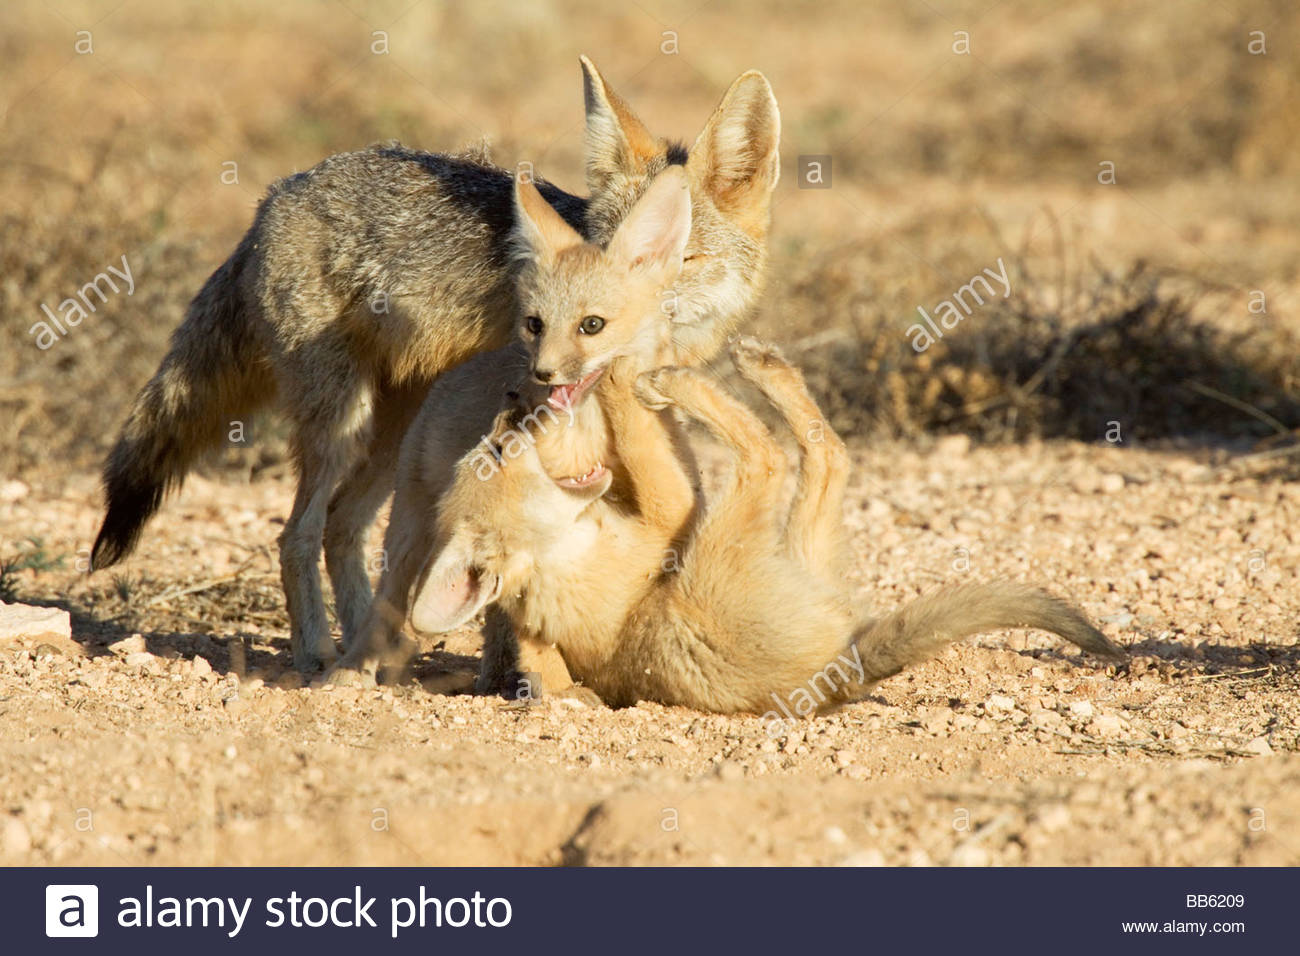 kit-foxes-vulpes-macrotis-pups-playing-BB6209.jpg